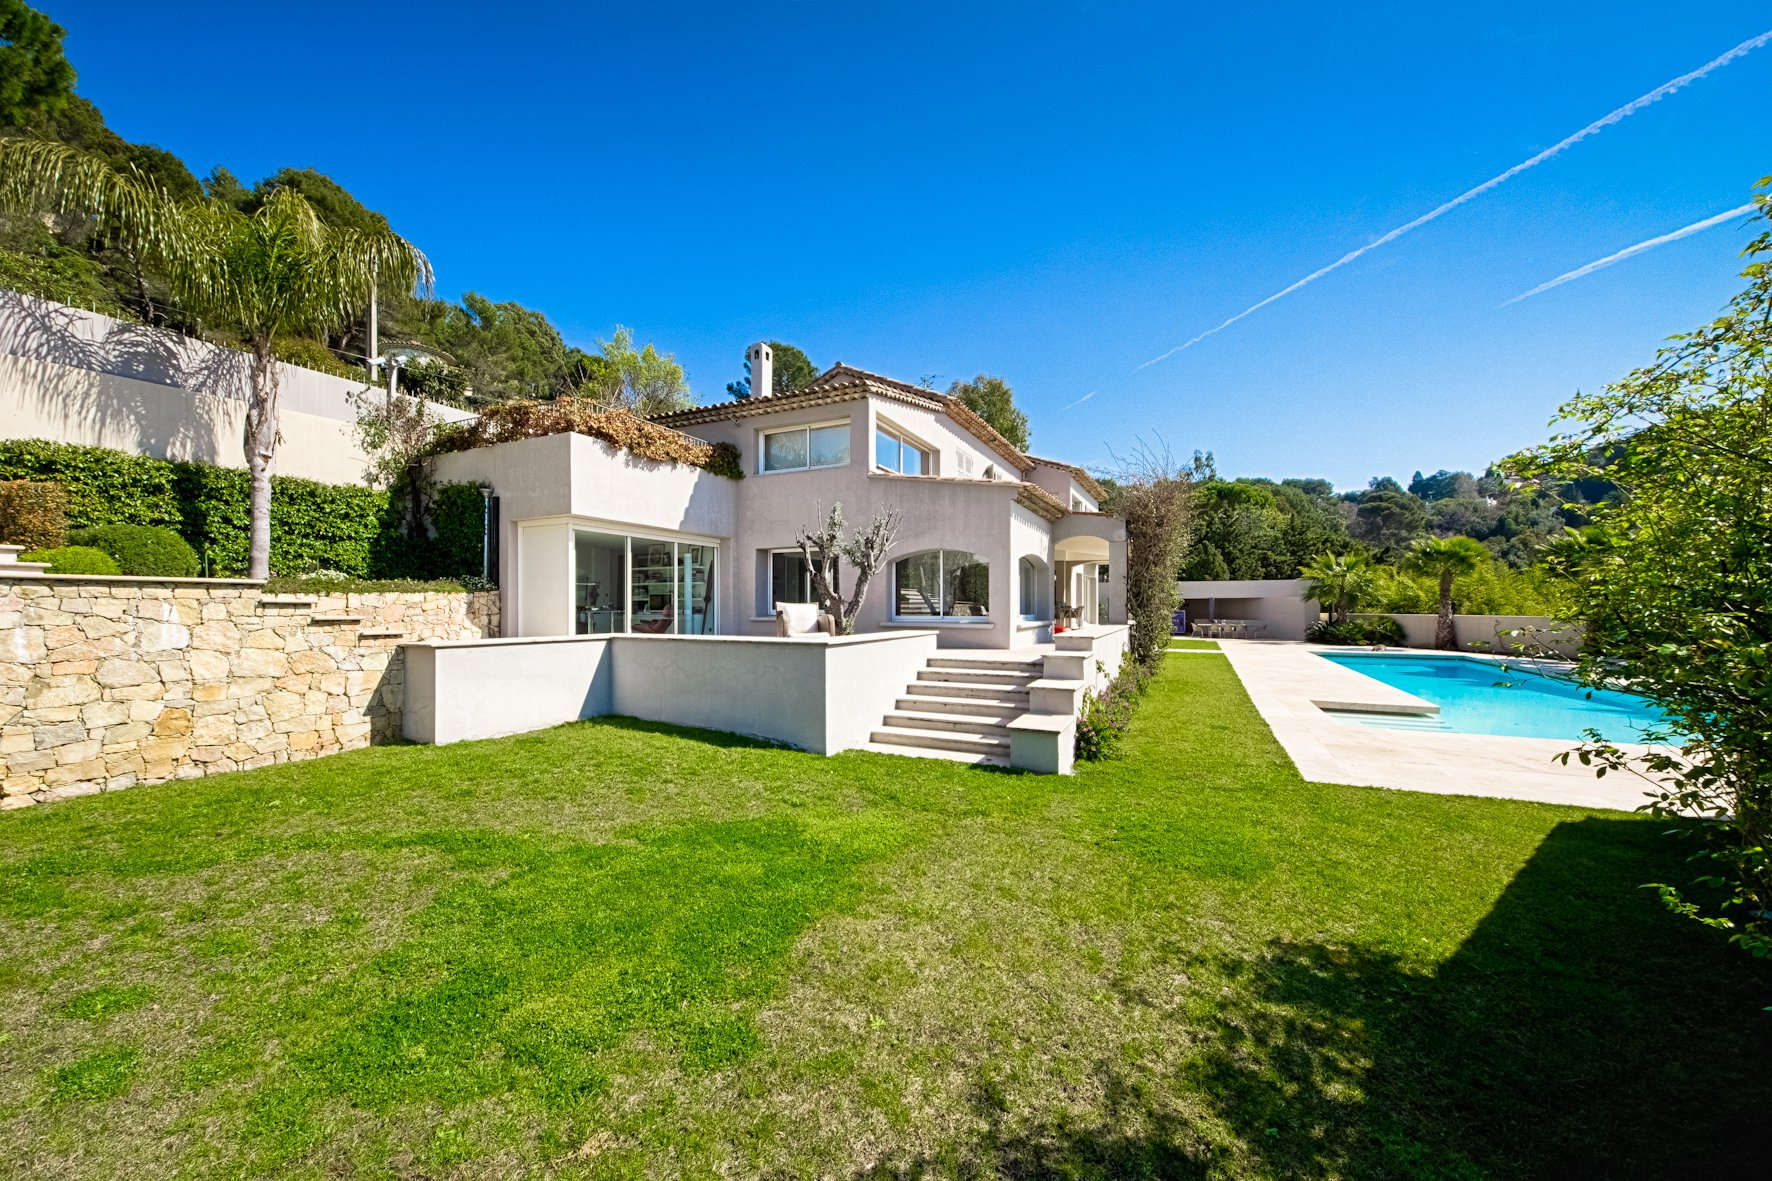 CANNES CALIFORNIE - DELIGHTFUL PROPERTY - SEA VIEW